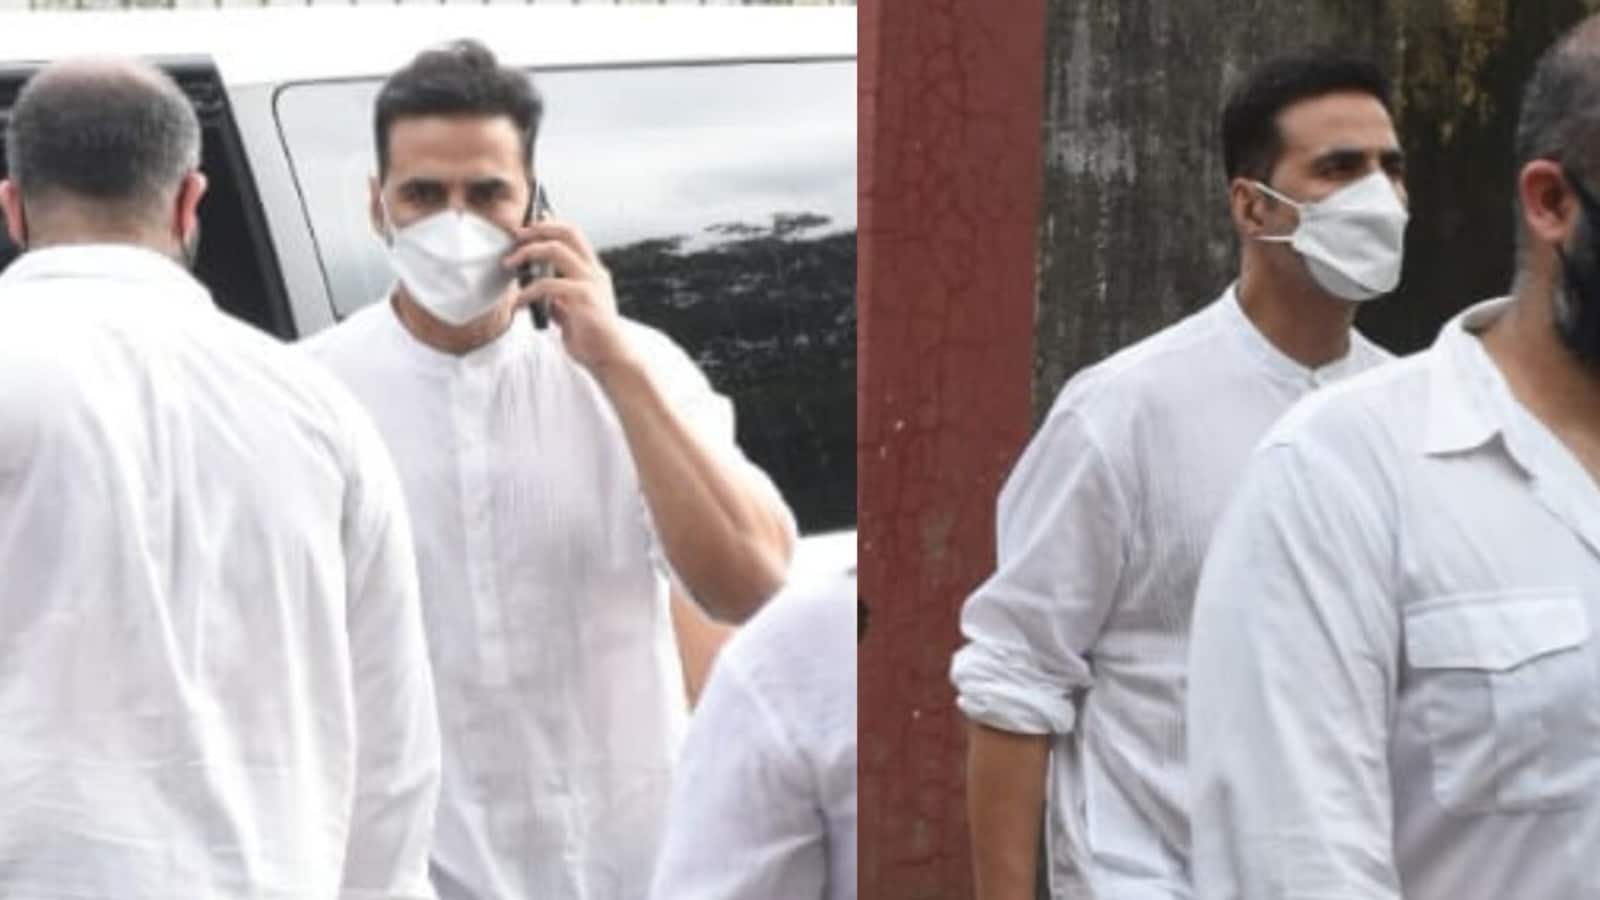 Akshay Kumar attends Aanand L Rai's mother's funeral, hours after his mom Aruna Bhatia's death. See pics   Bollywood - Hindustan Times